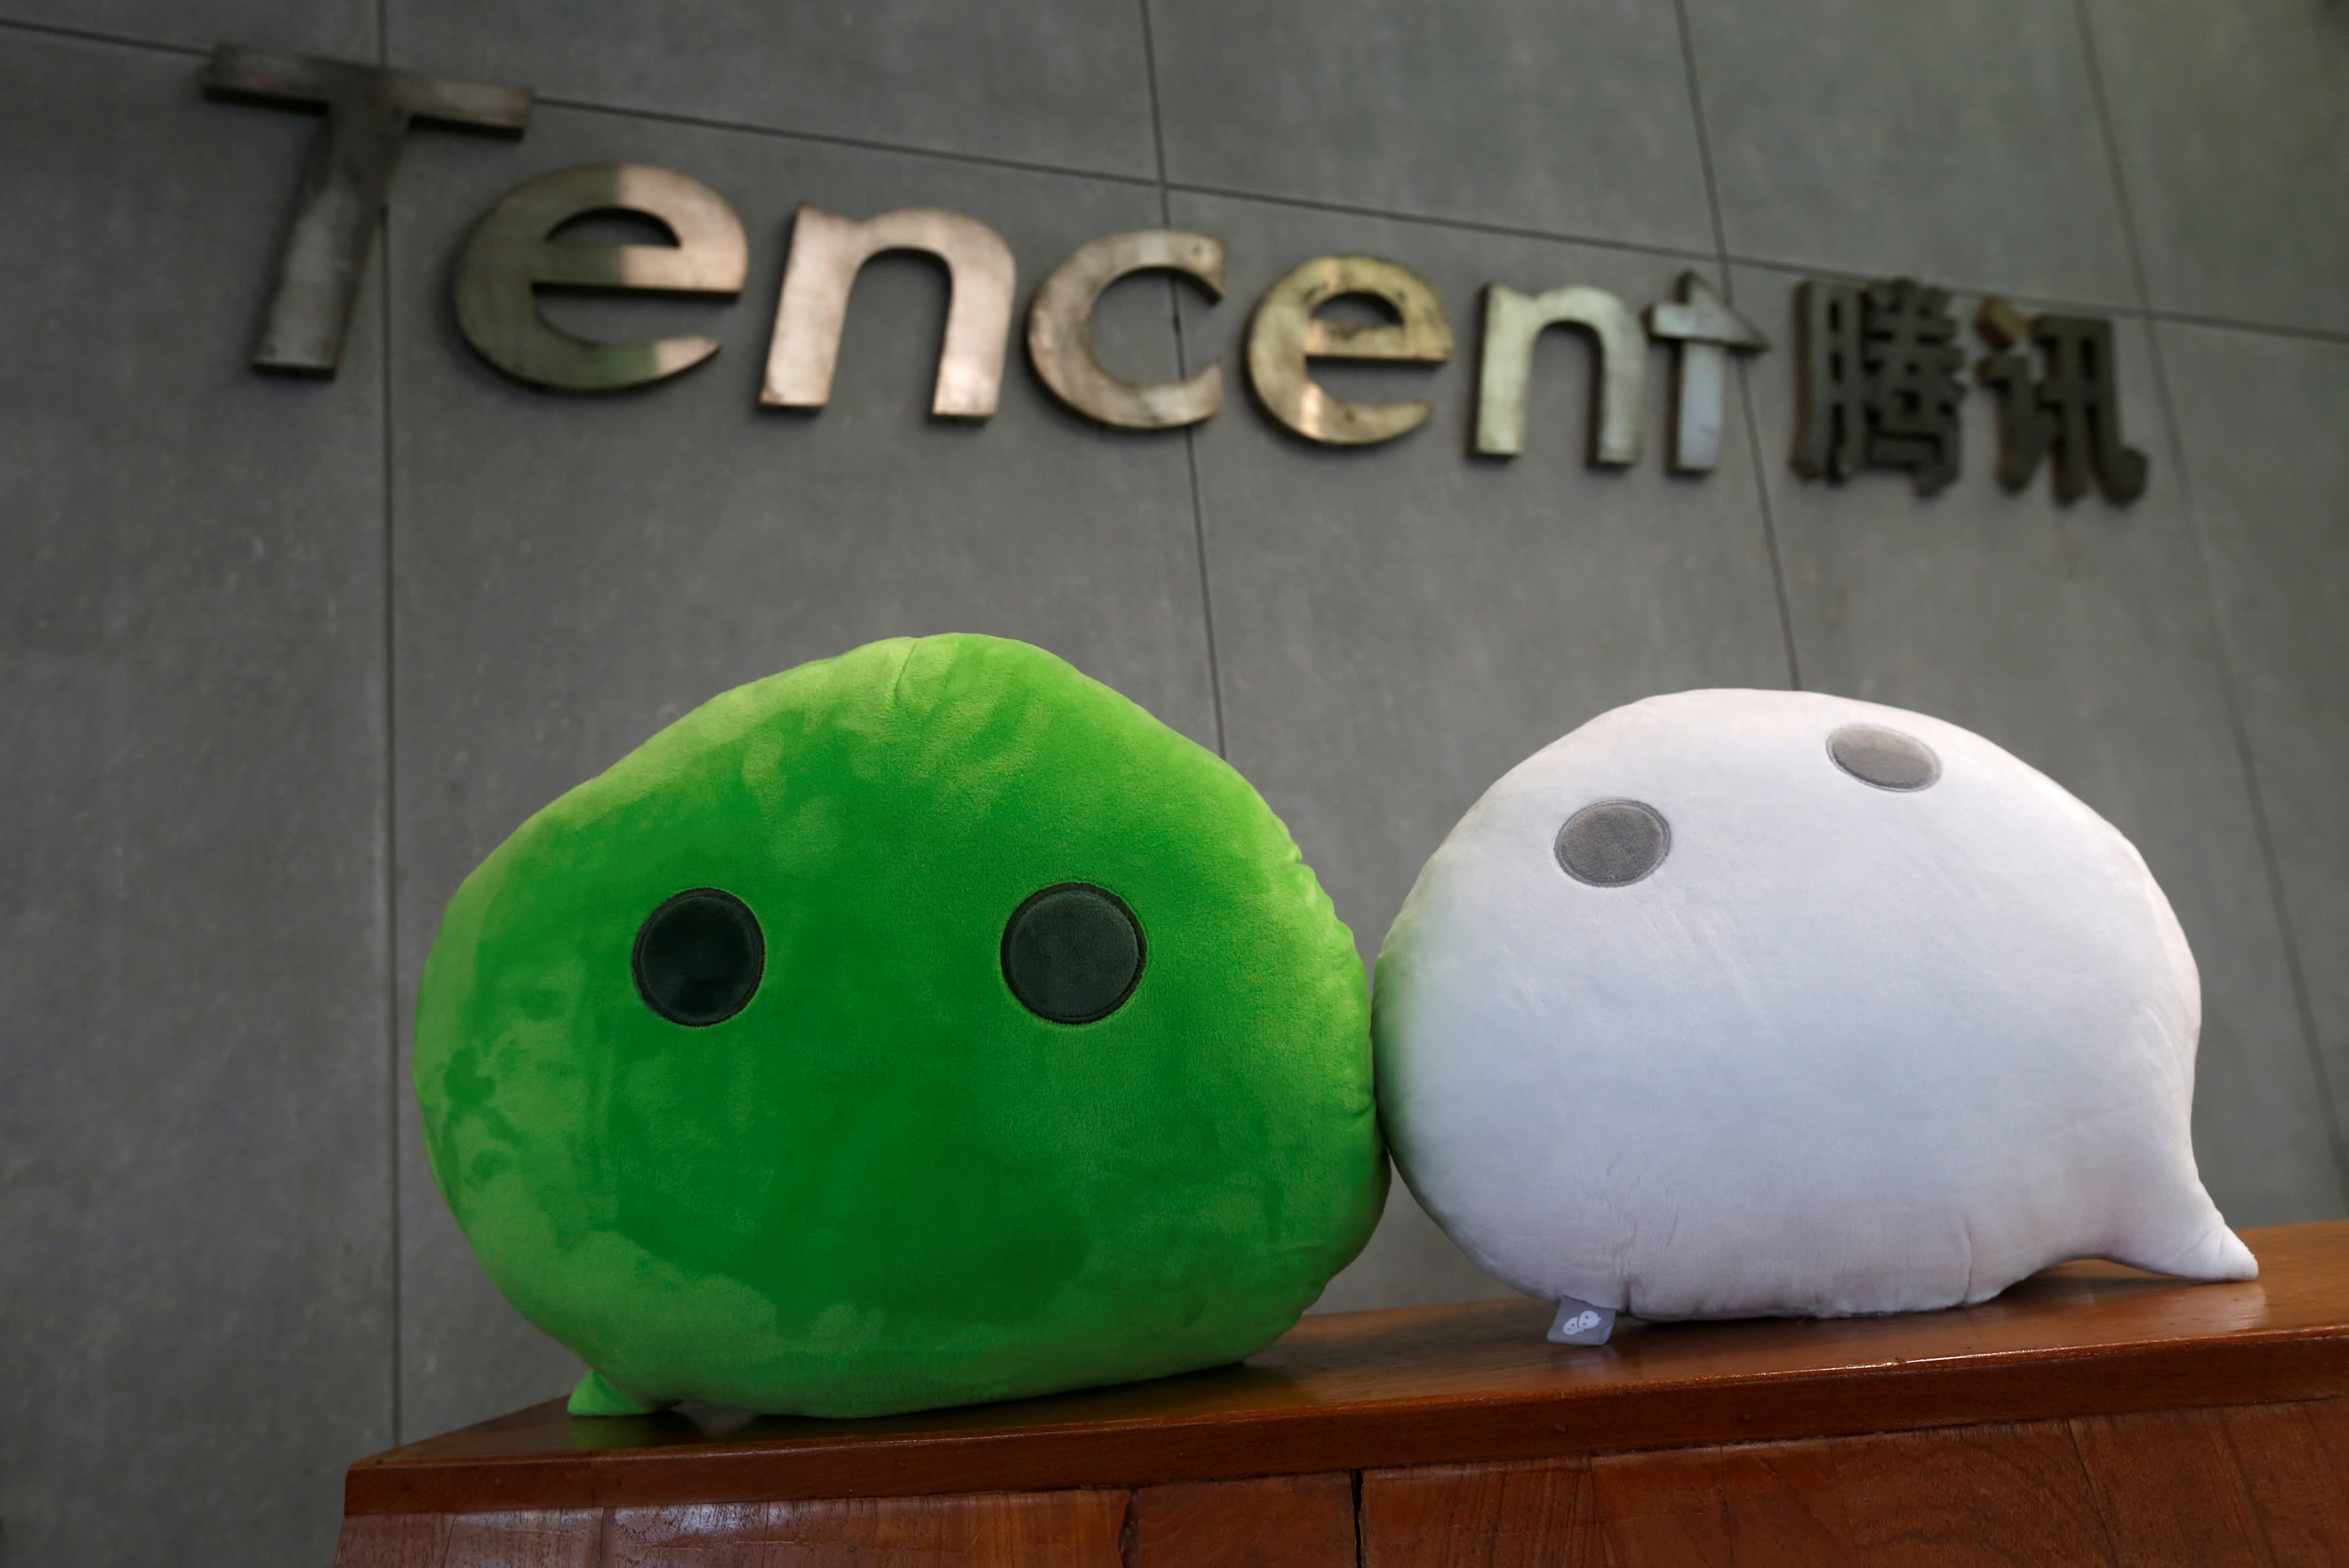 Stocks making the biggest moves after hours: Tencent Music, Roblox & more